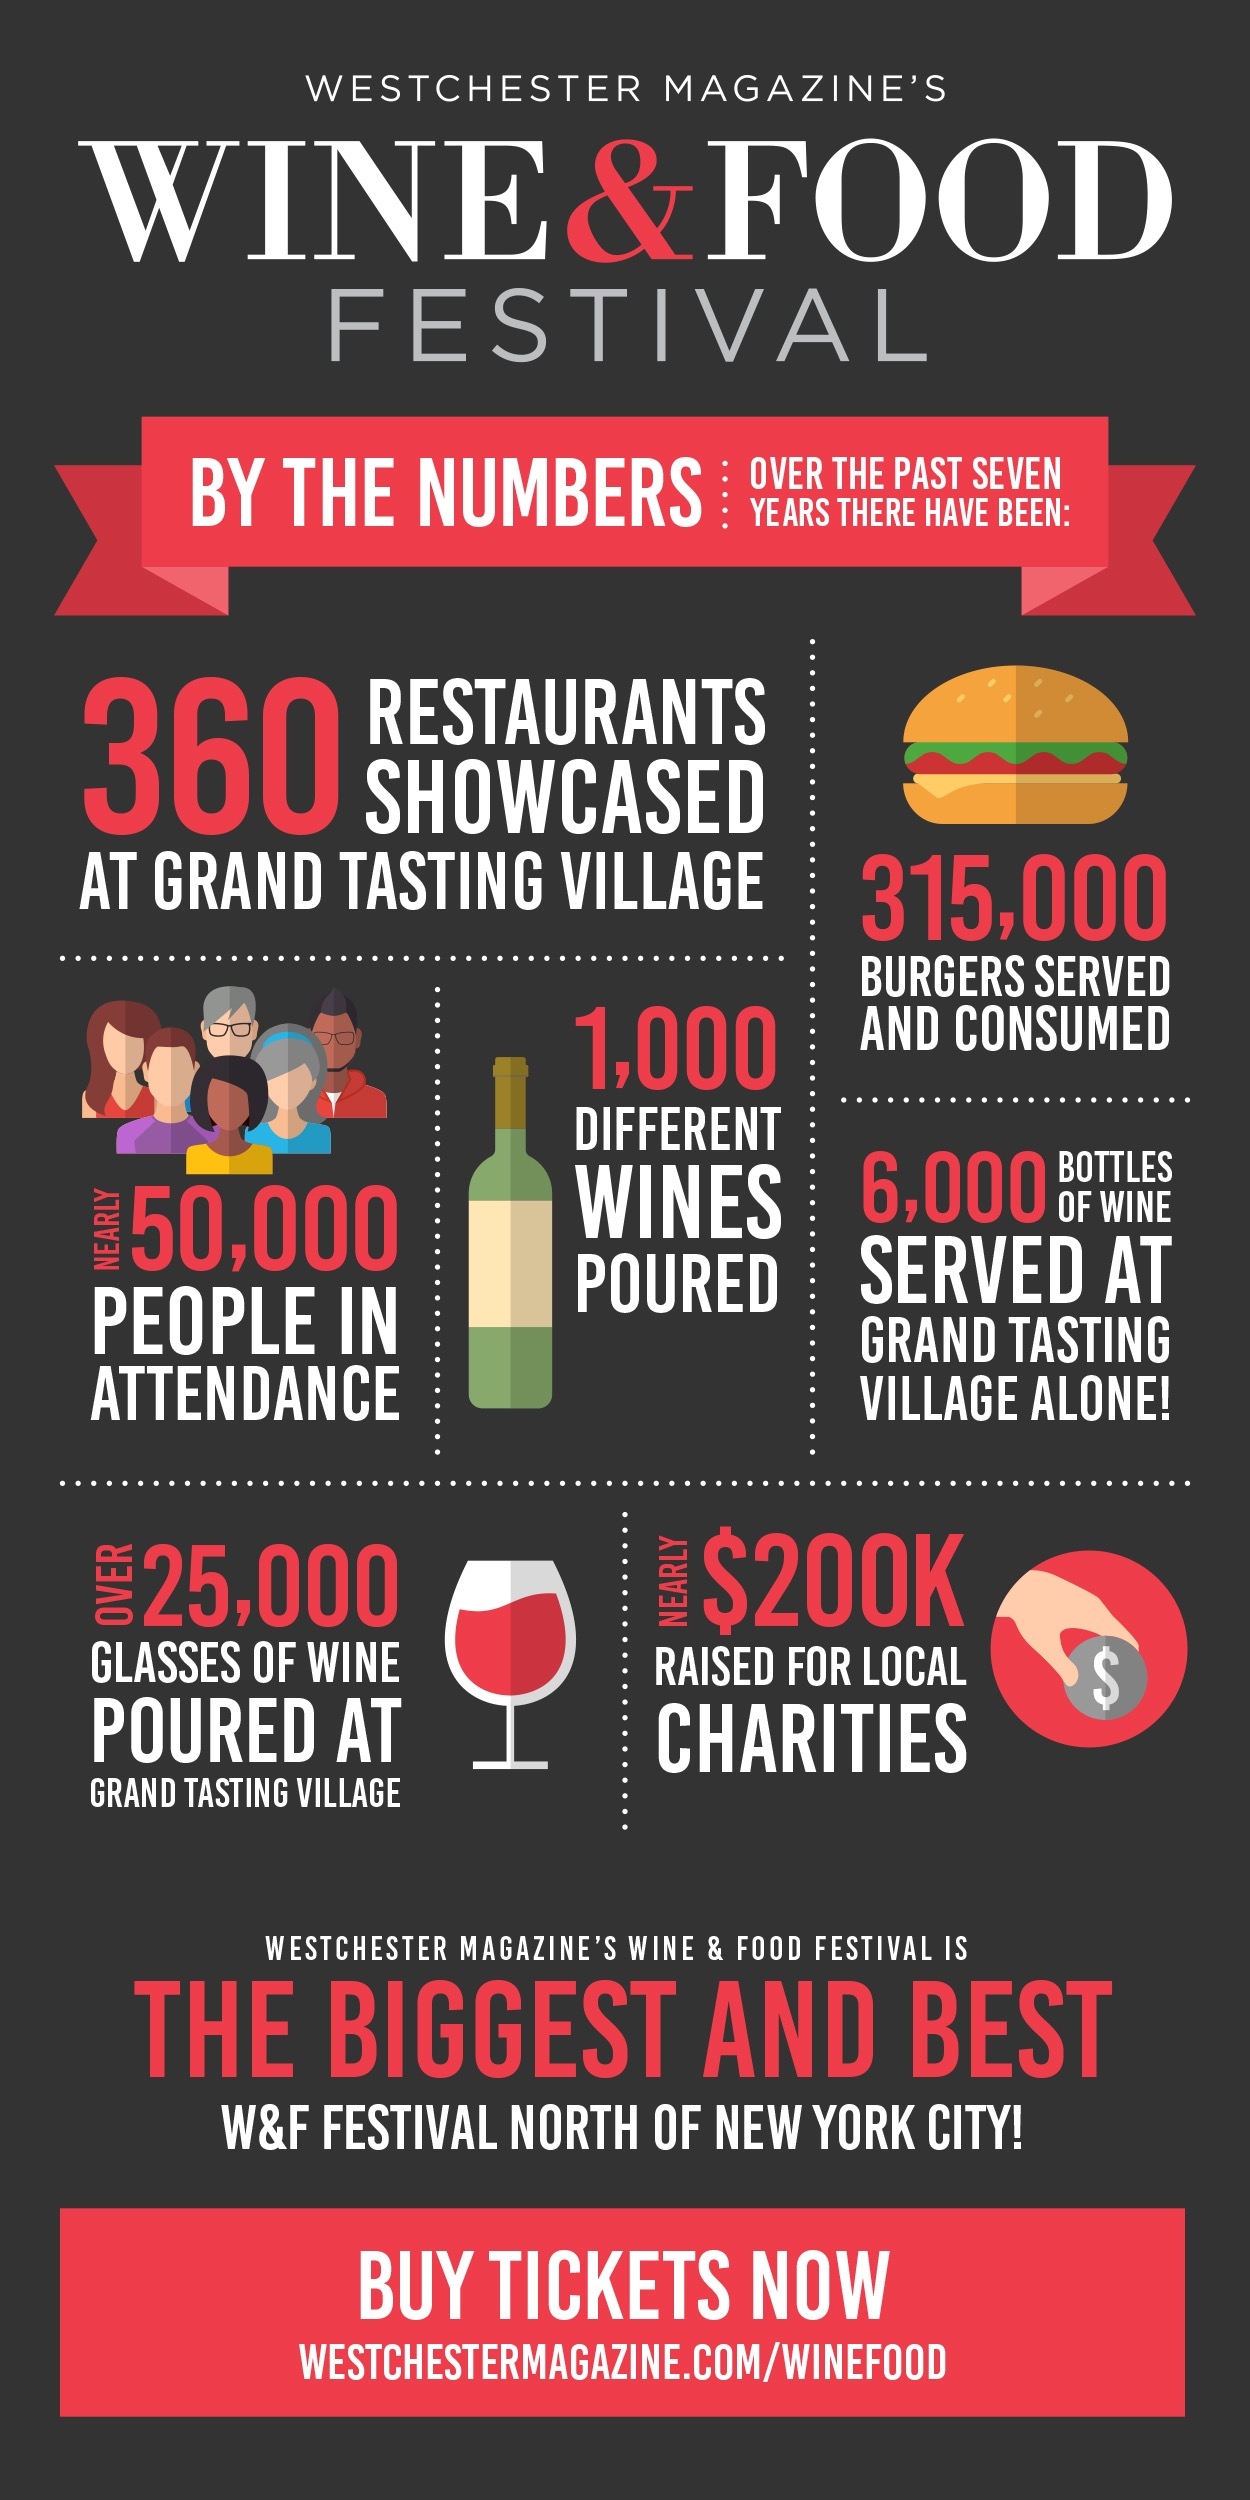 Take A Trip To The Annual Westchester Magazine Wine & Food Festival